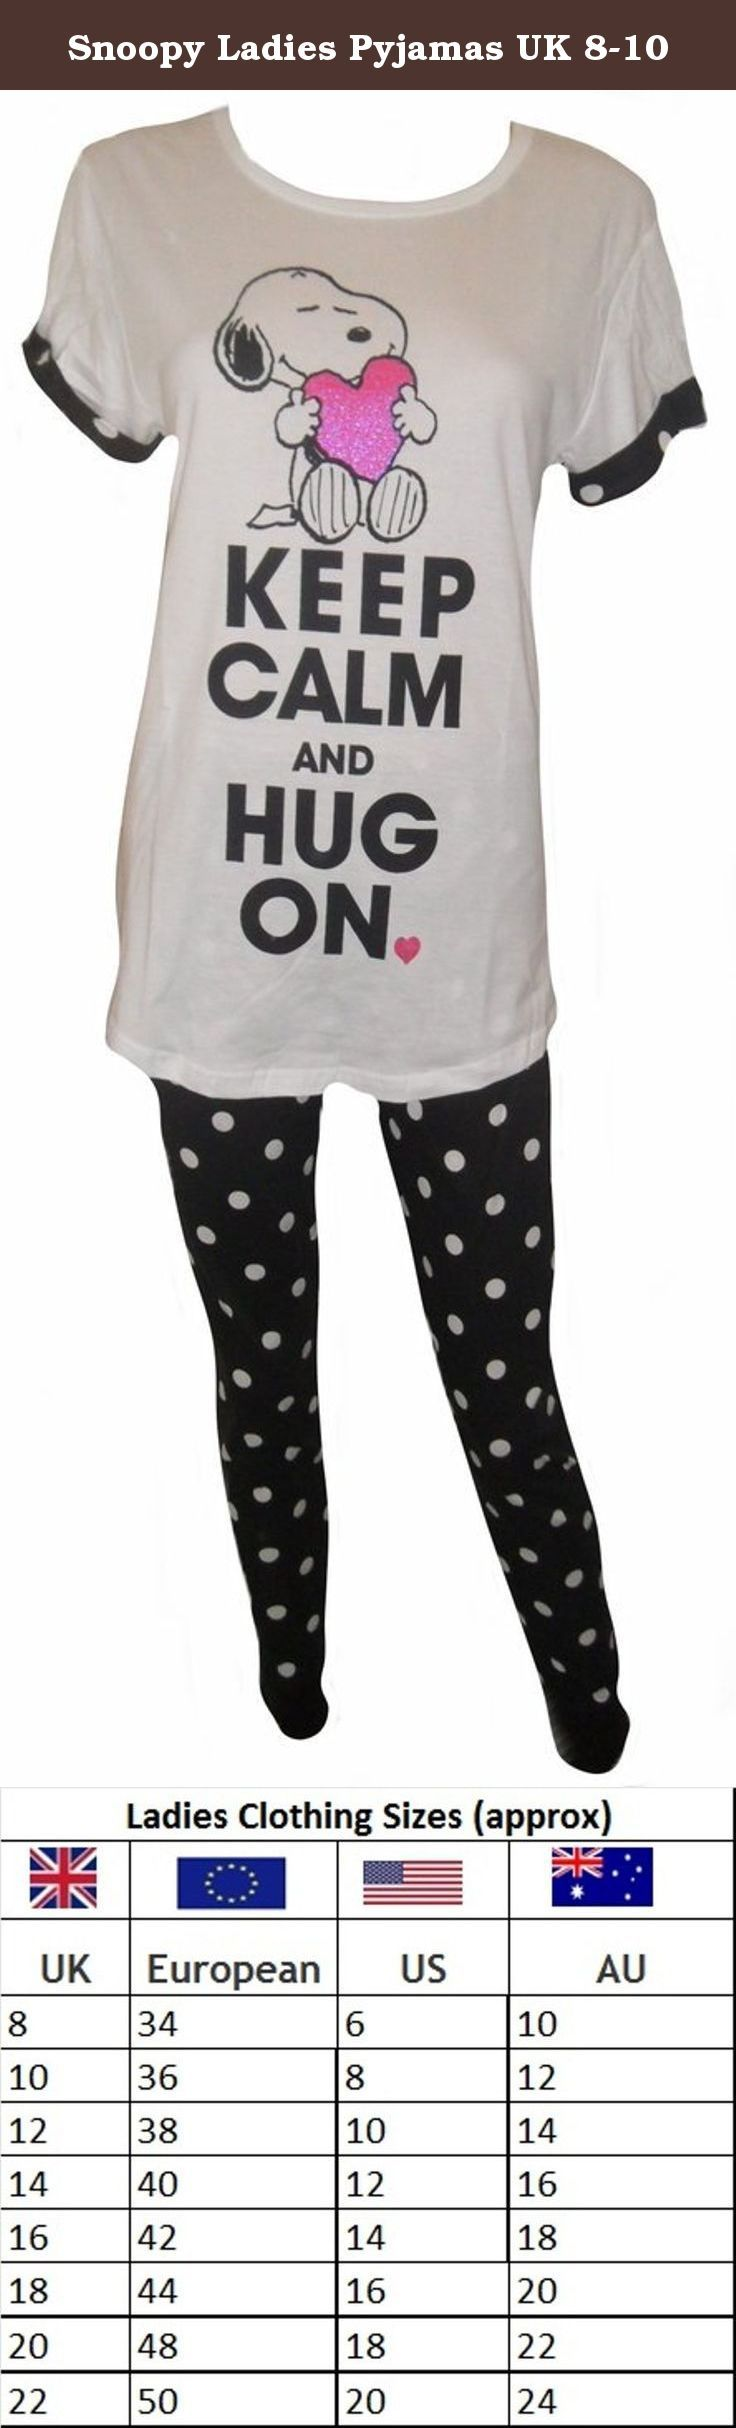 Snoopy Ladies Pyjamas UK 8-10. Snoopy Ladies Pyjamas. These short sleeved, long leg pants are made from 100% cotton. (Cotton like stretchable T-shirt). The pants are black and white spots. The white top has a lovely image on the front of Snoopy holding a heart and the phrase KEEP CALM AND HUG ON. These are available in sizes UK: 8-10, 12-15, 16-18, 20-22.